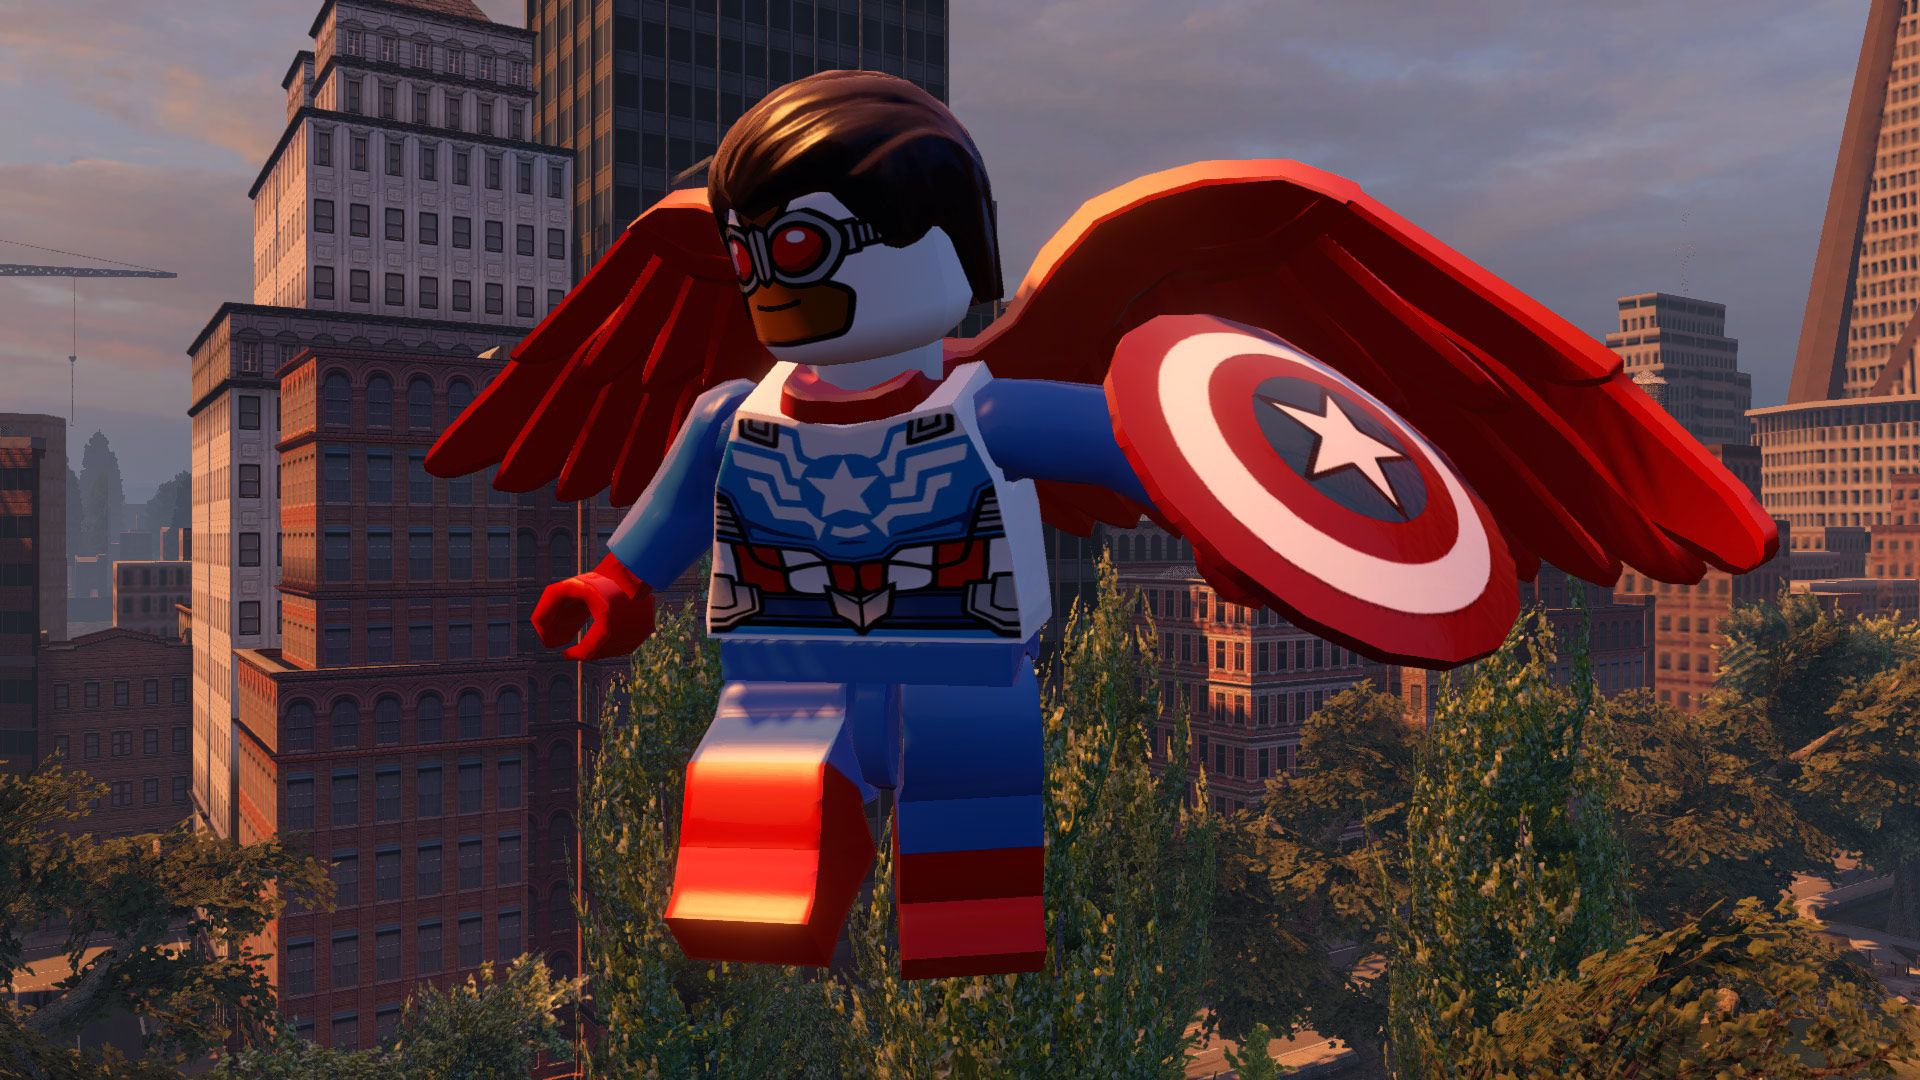 Screenshot for the game LEGO: Marvel Мстители / LEGO: Marvel's Avengers (2016) PC | RePack от R.G. Механики